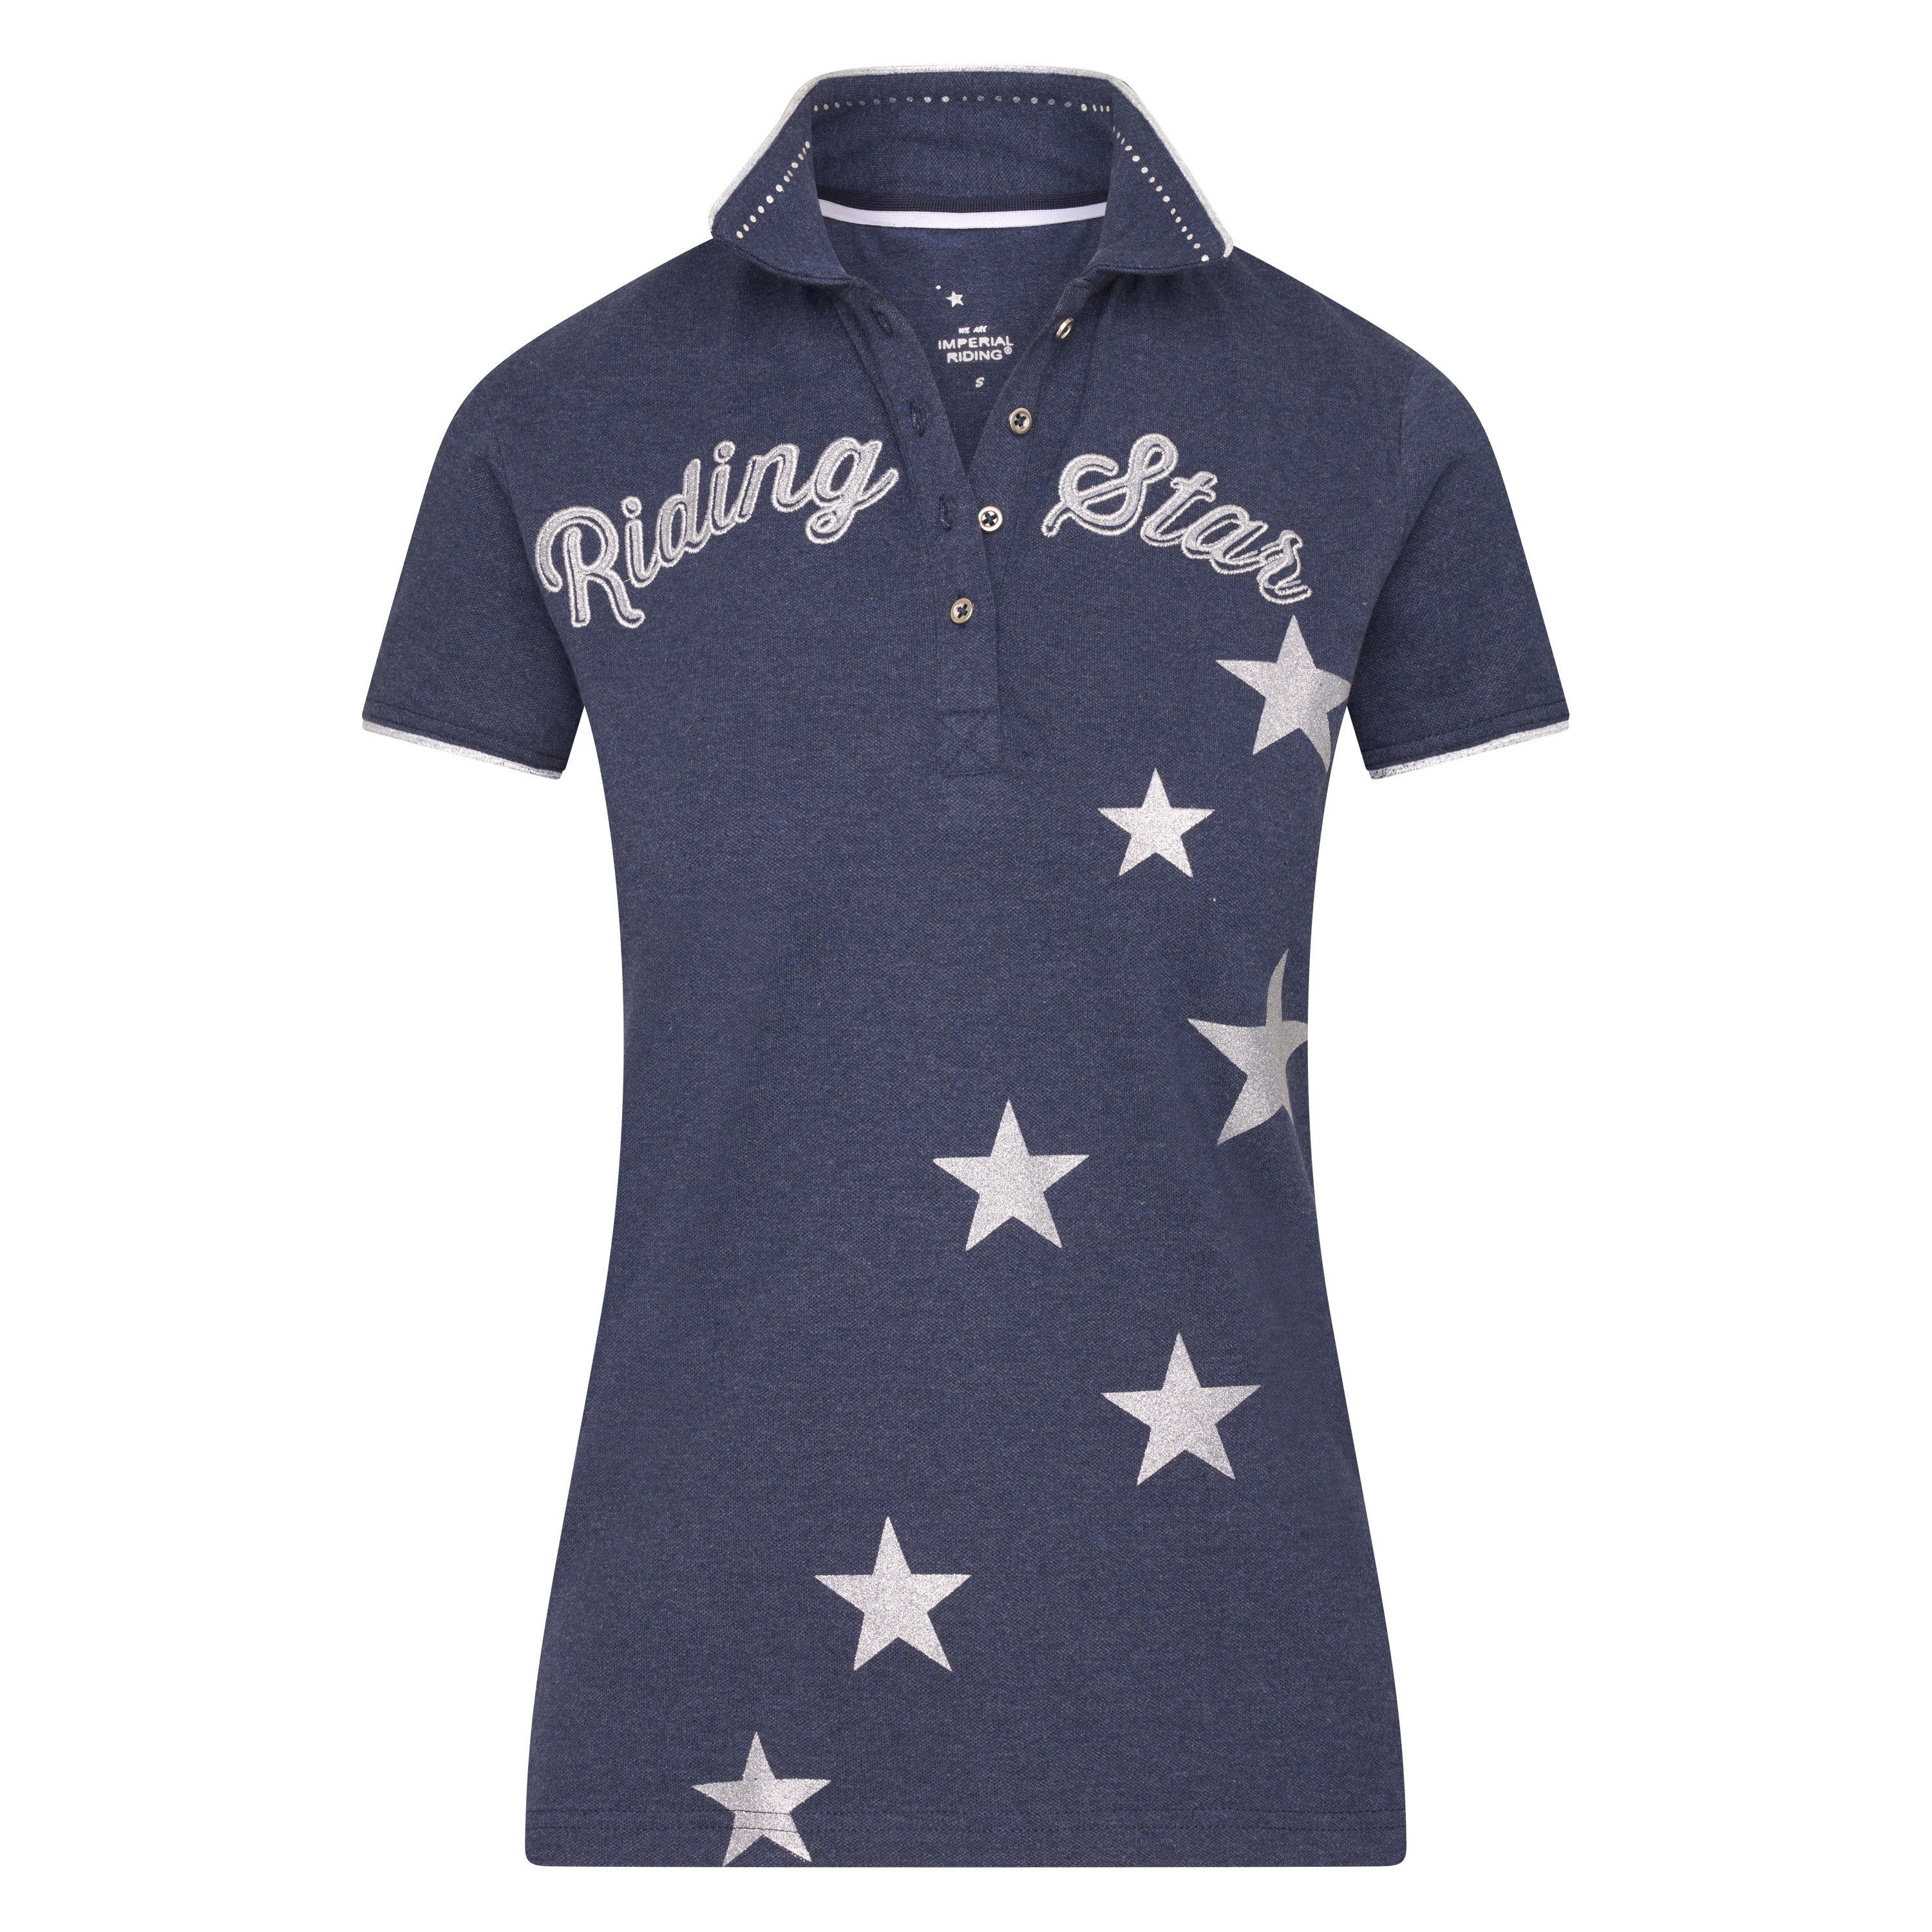 Imperial Riding polo shirt IRHIt's 'time to shine'